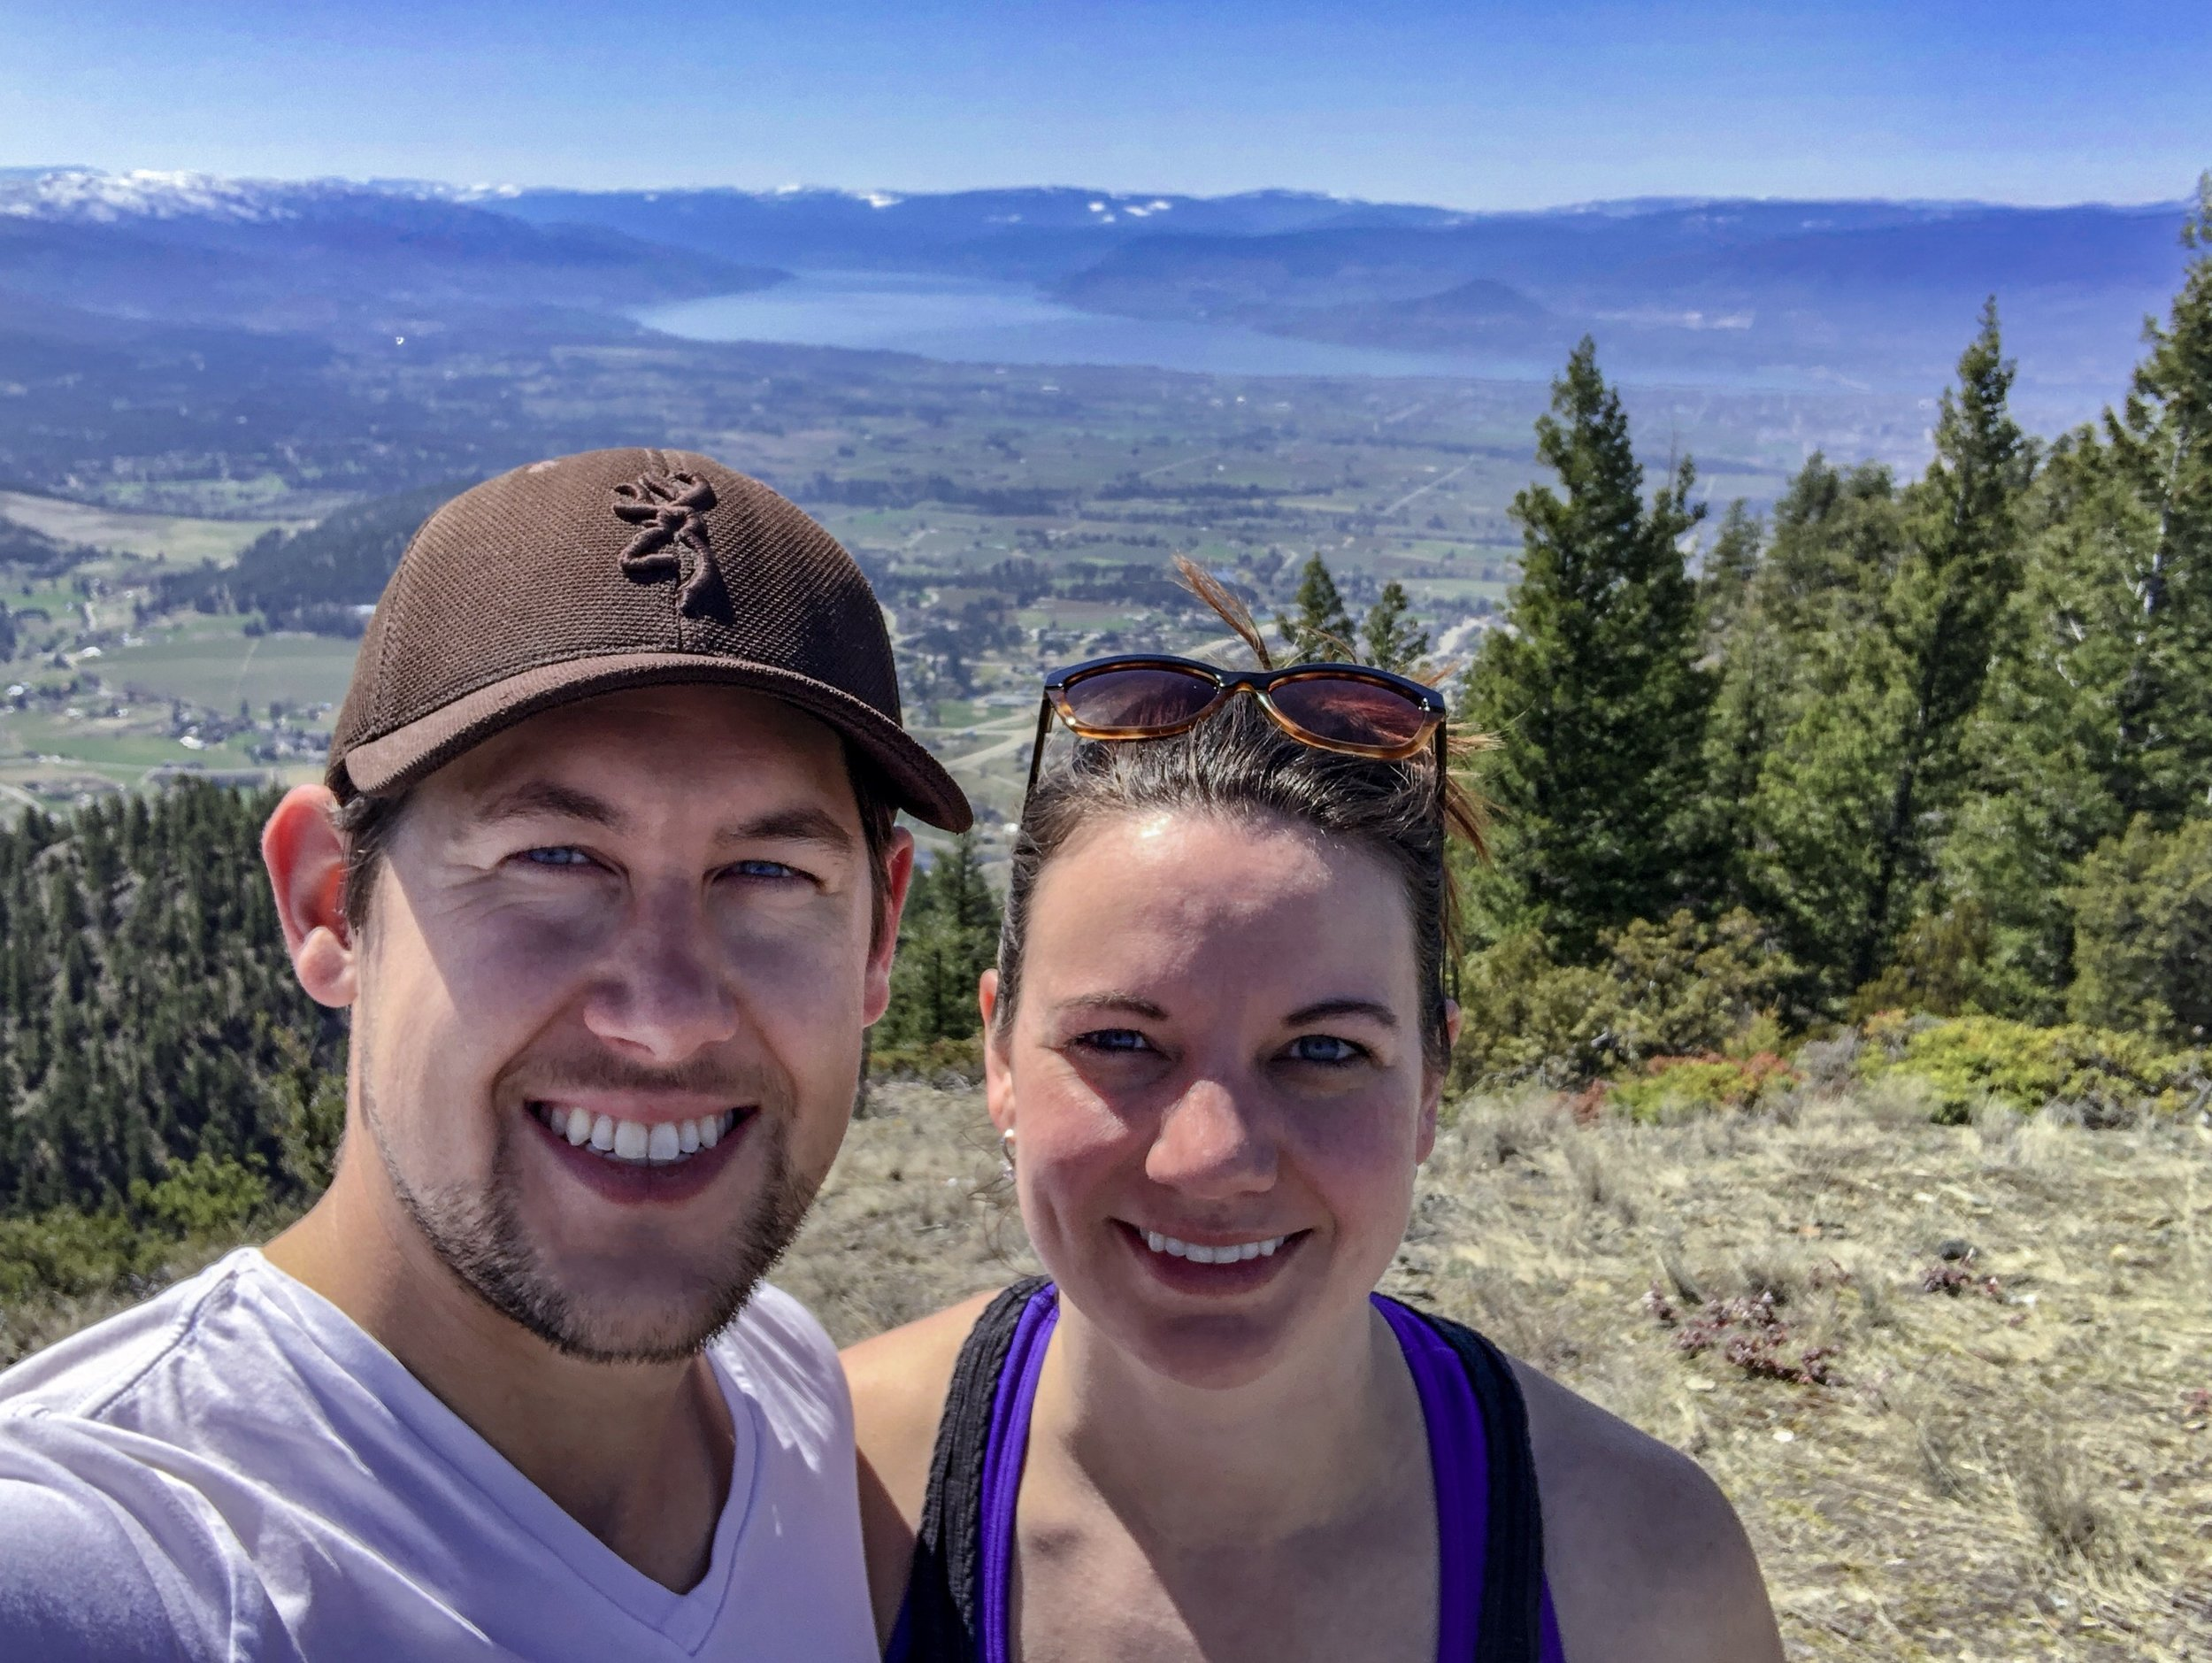 Joshua Elliott and Sarah McIntyre are all smiles after an 11km hike to the top of Black Mountain in Kelowna, BC with views of the Okanagan Valley and Okanagan Lake below.